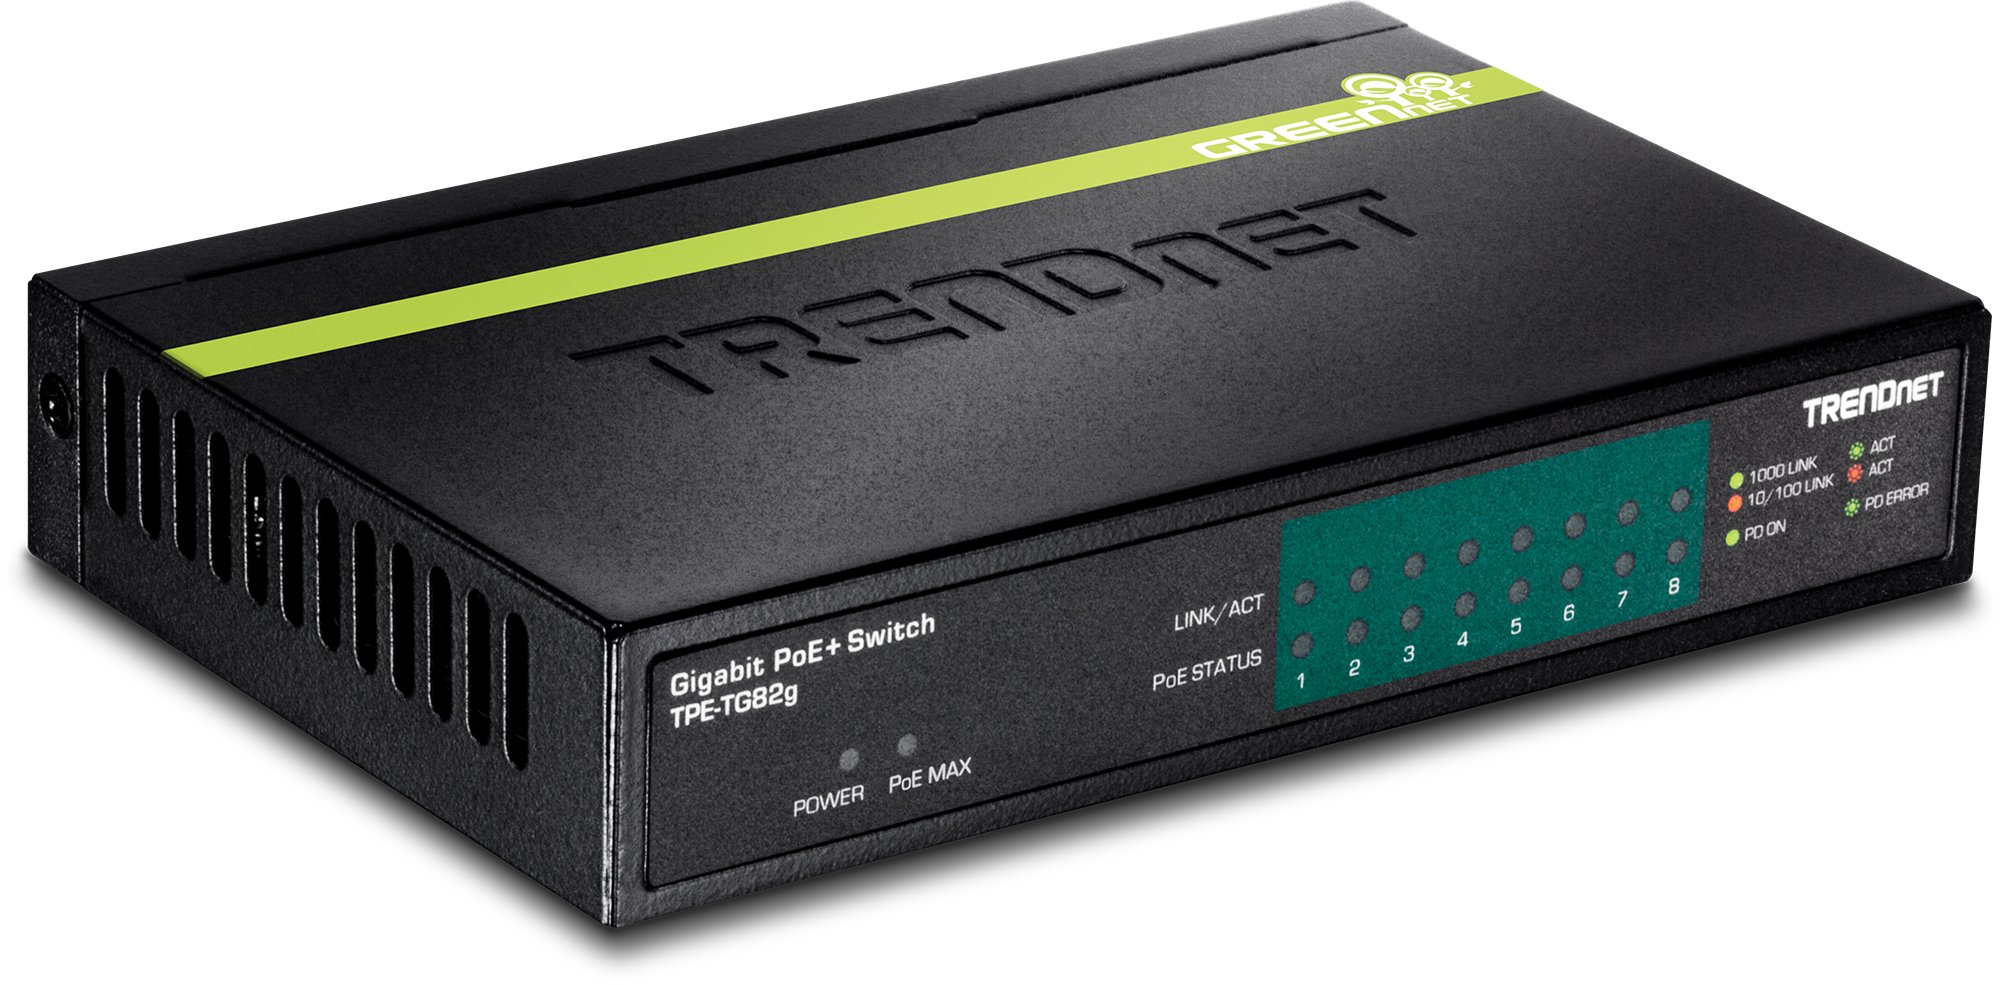 TRENDnet 8-Port GREENnet Gigabit PoE+ Switch, 61W PoE Budget, 16Gbps Switching Capacity, Plug N Play, Lifetime Protection, TPE-TG82G